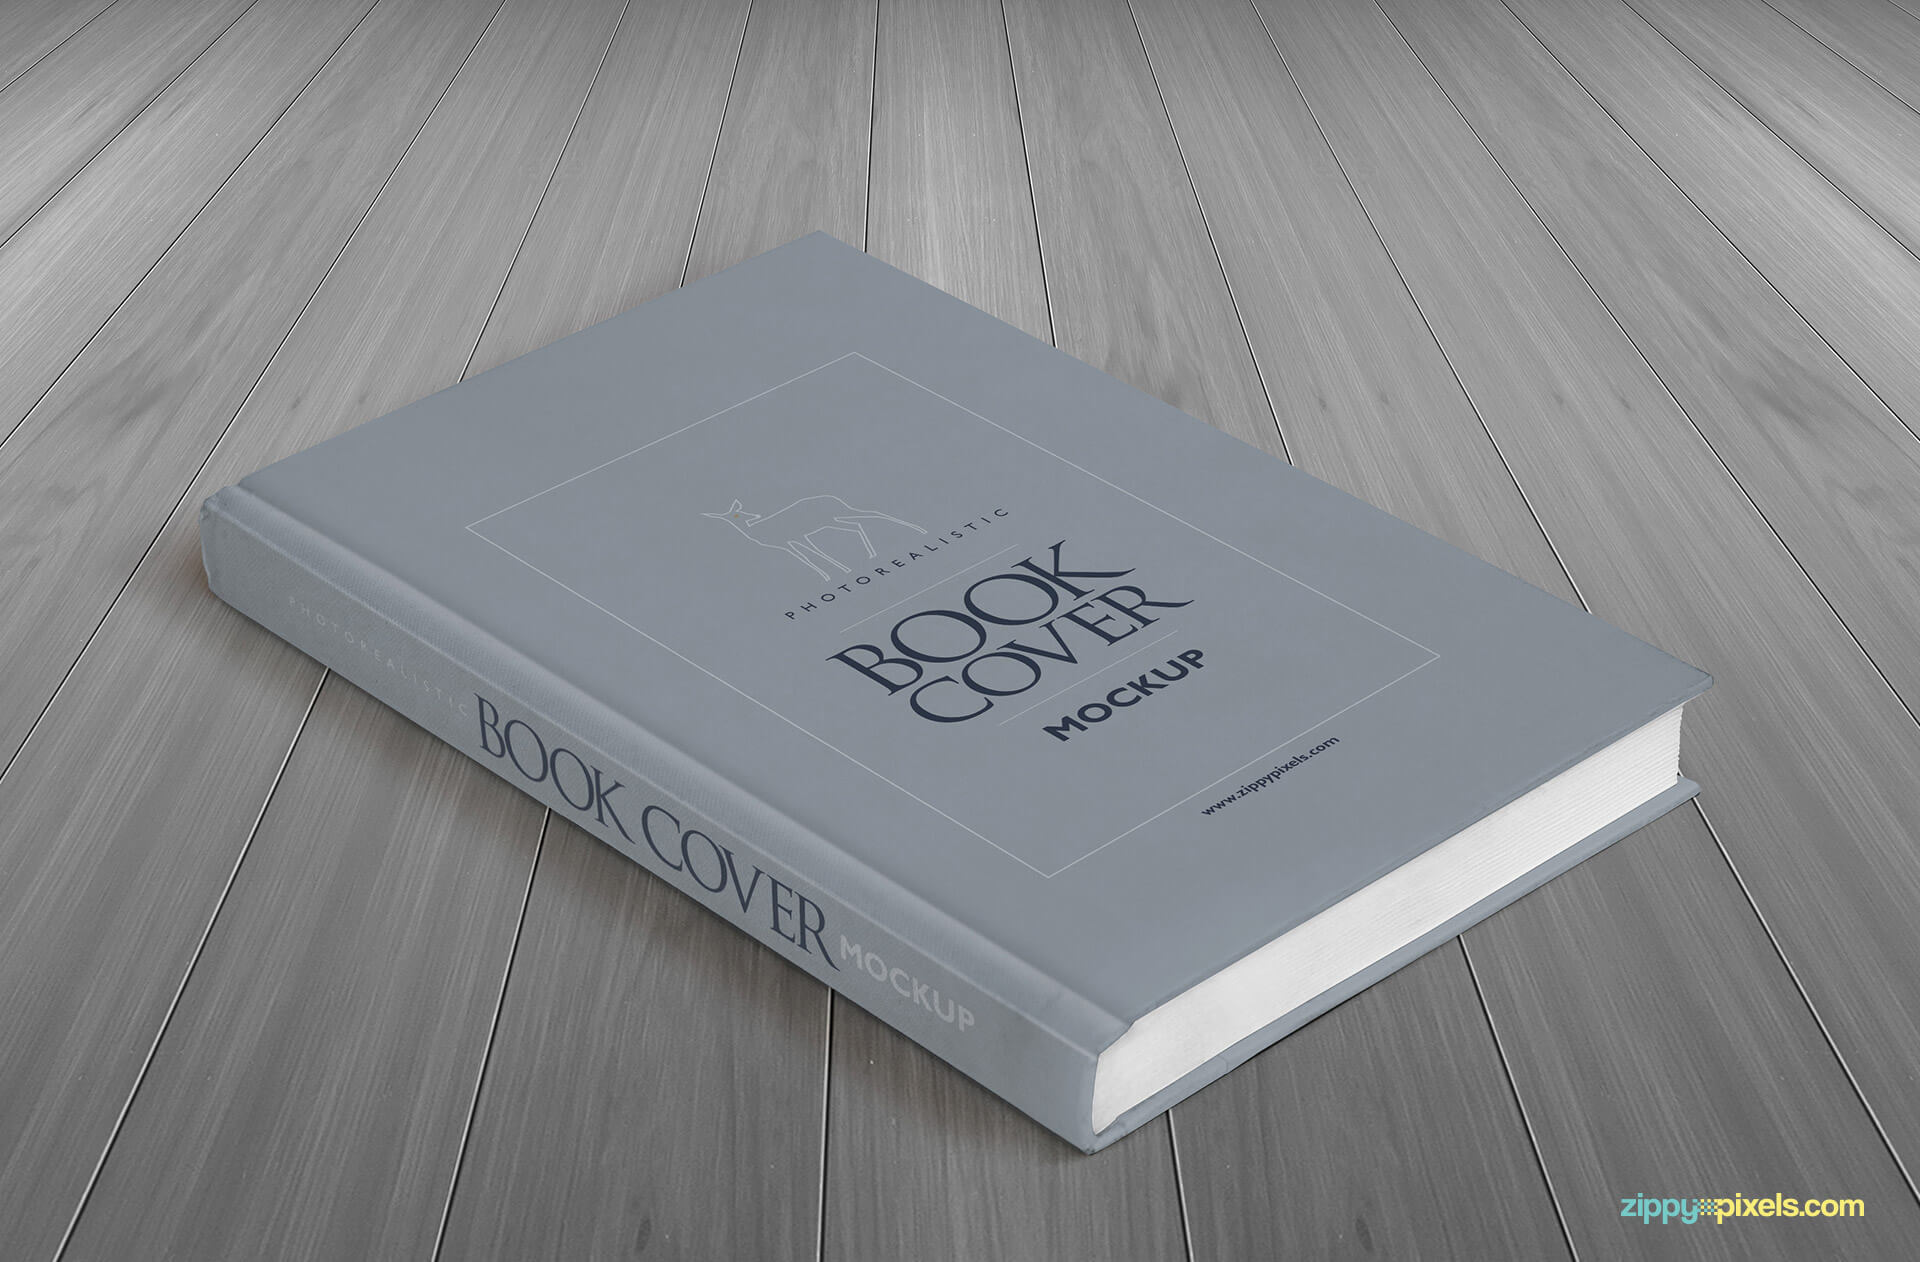 Perpective Hardcover Book Mockup showing front cover & spine